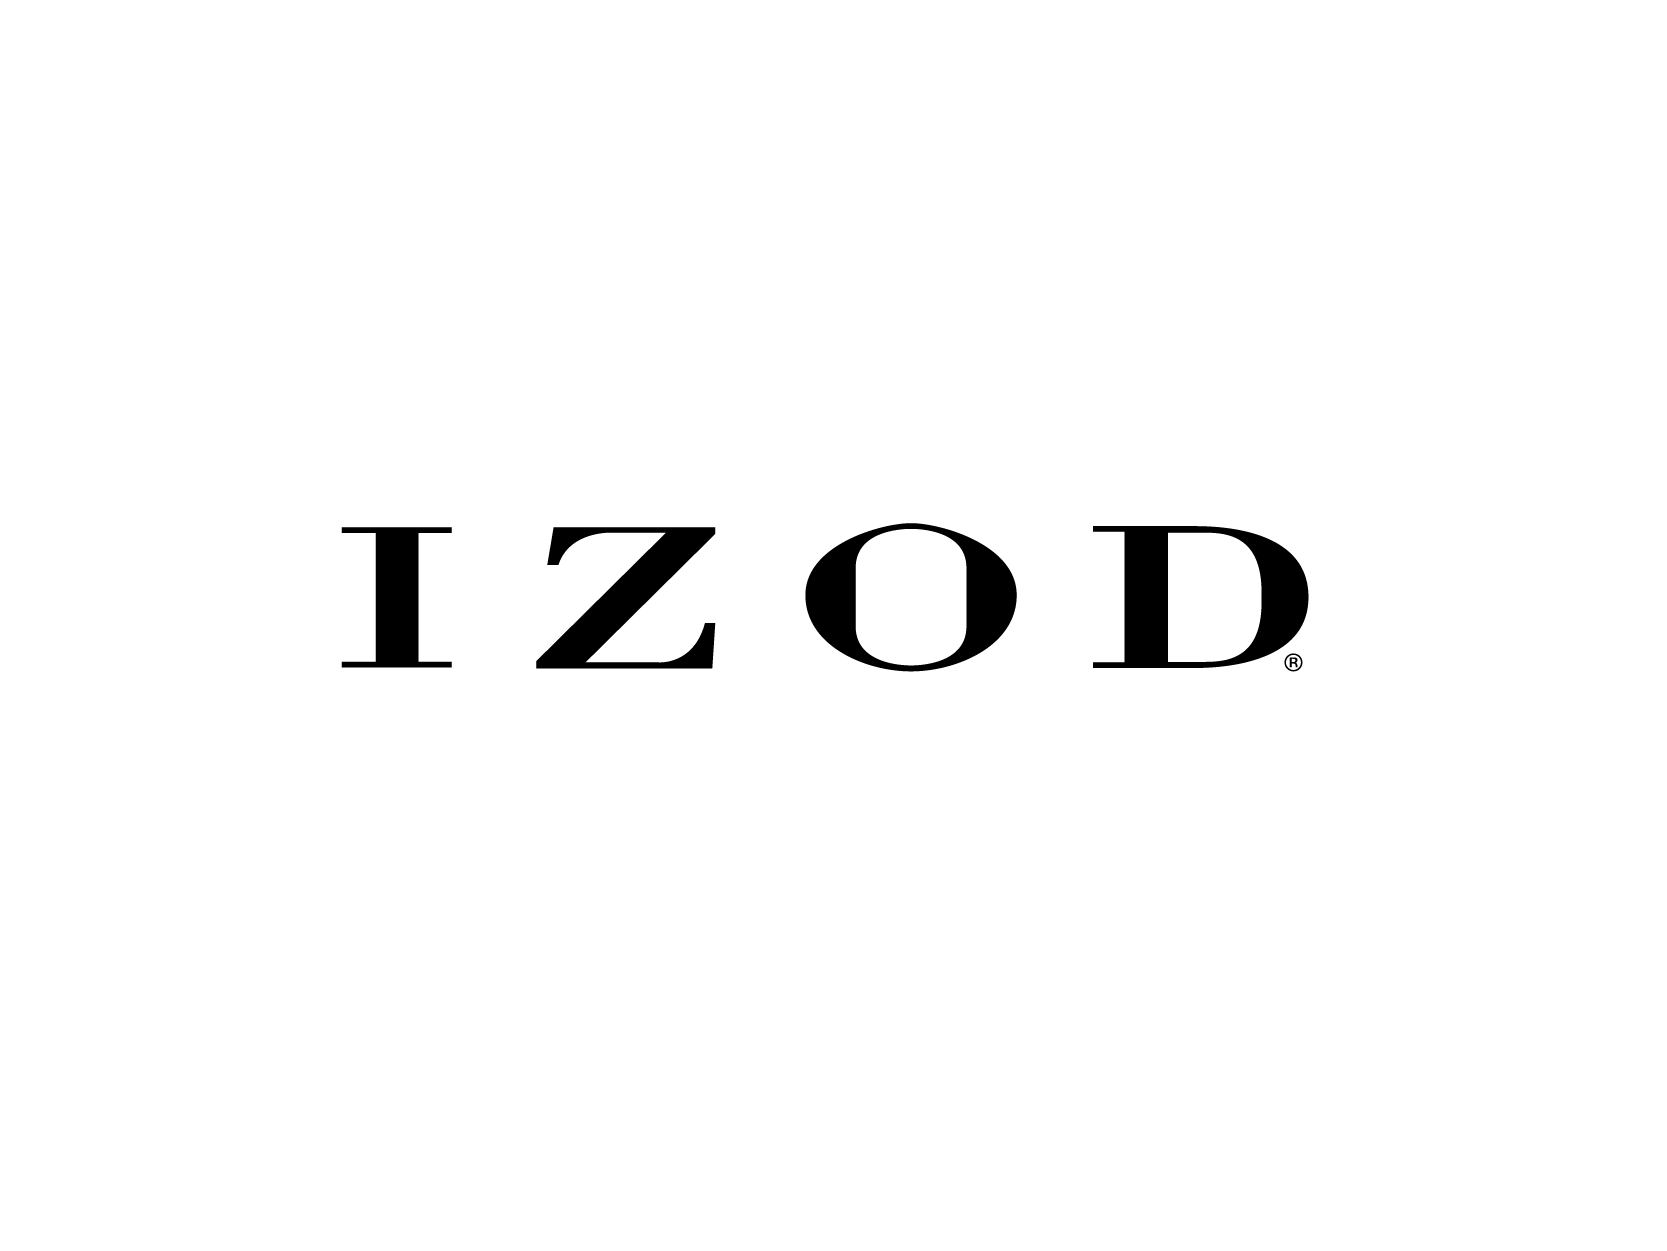 Izod Shoes Developer